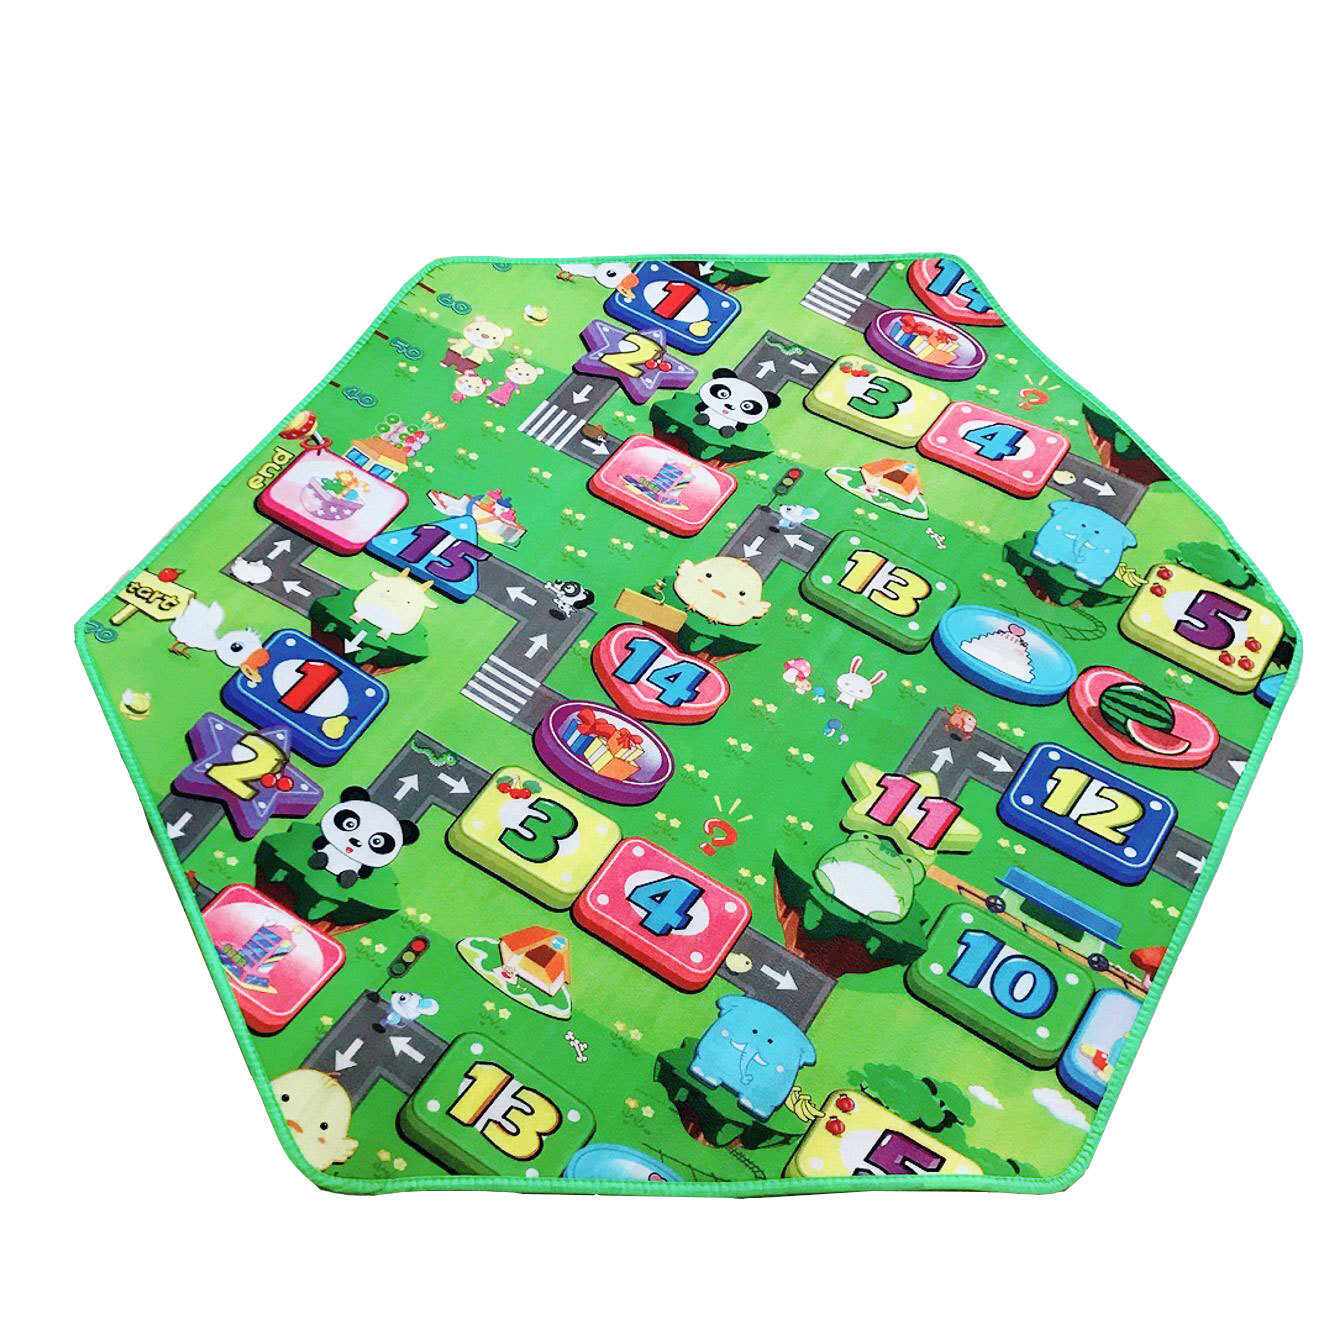 Baby Cartoon Model Play Game Mat Children Crawling Puzzle Living Room Rug Toys Outdoor Picnic Portable Kids Cushion Toy